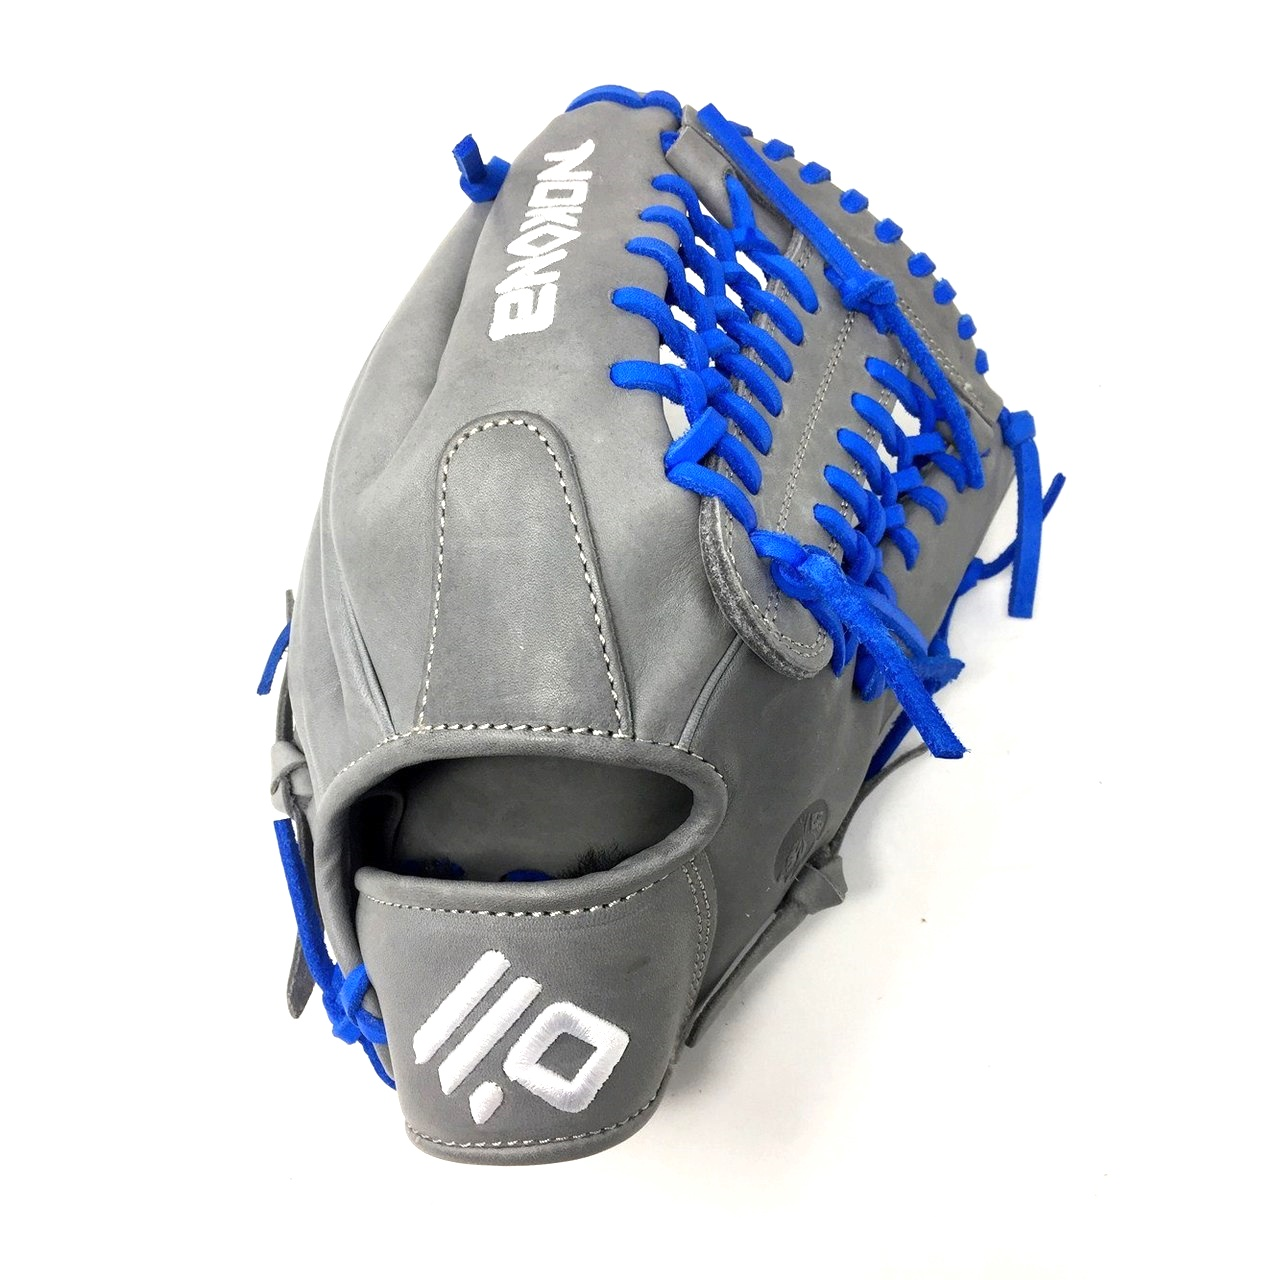 nokona-americankip-14u-gray-with-royal-laces-11-25-baseball-glove-mod-trap-web-right-hand-throw A-200M-GR-RY-RightHandThrow Nokona Does Not Apply The American Kip series made with the finest American steer hide